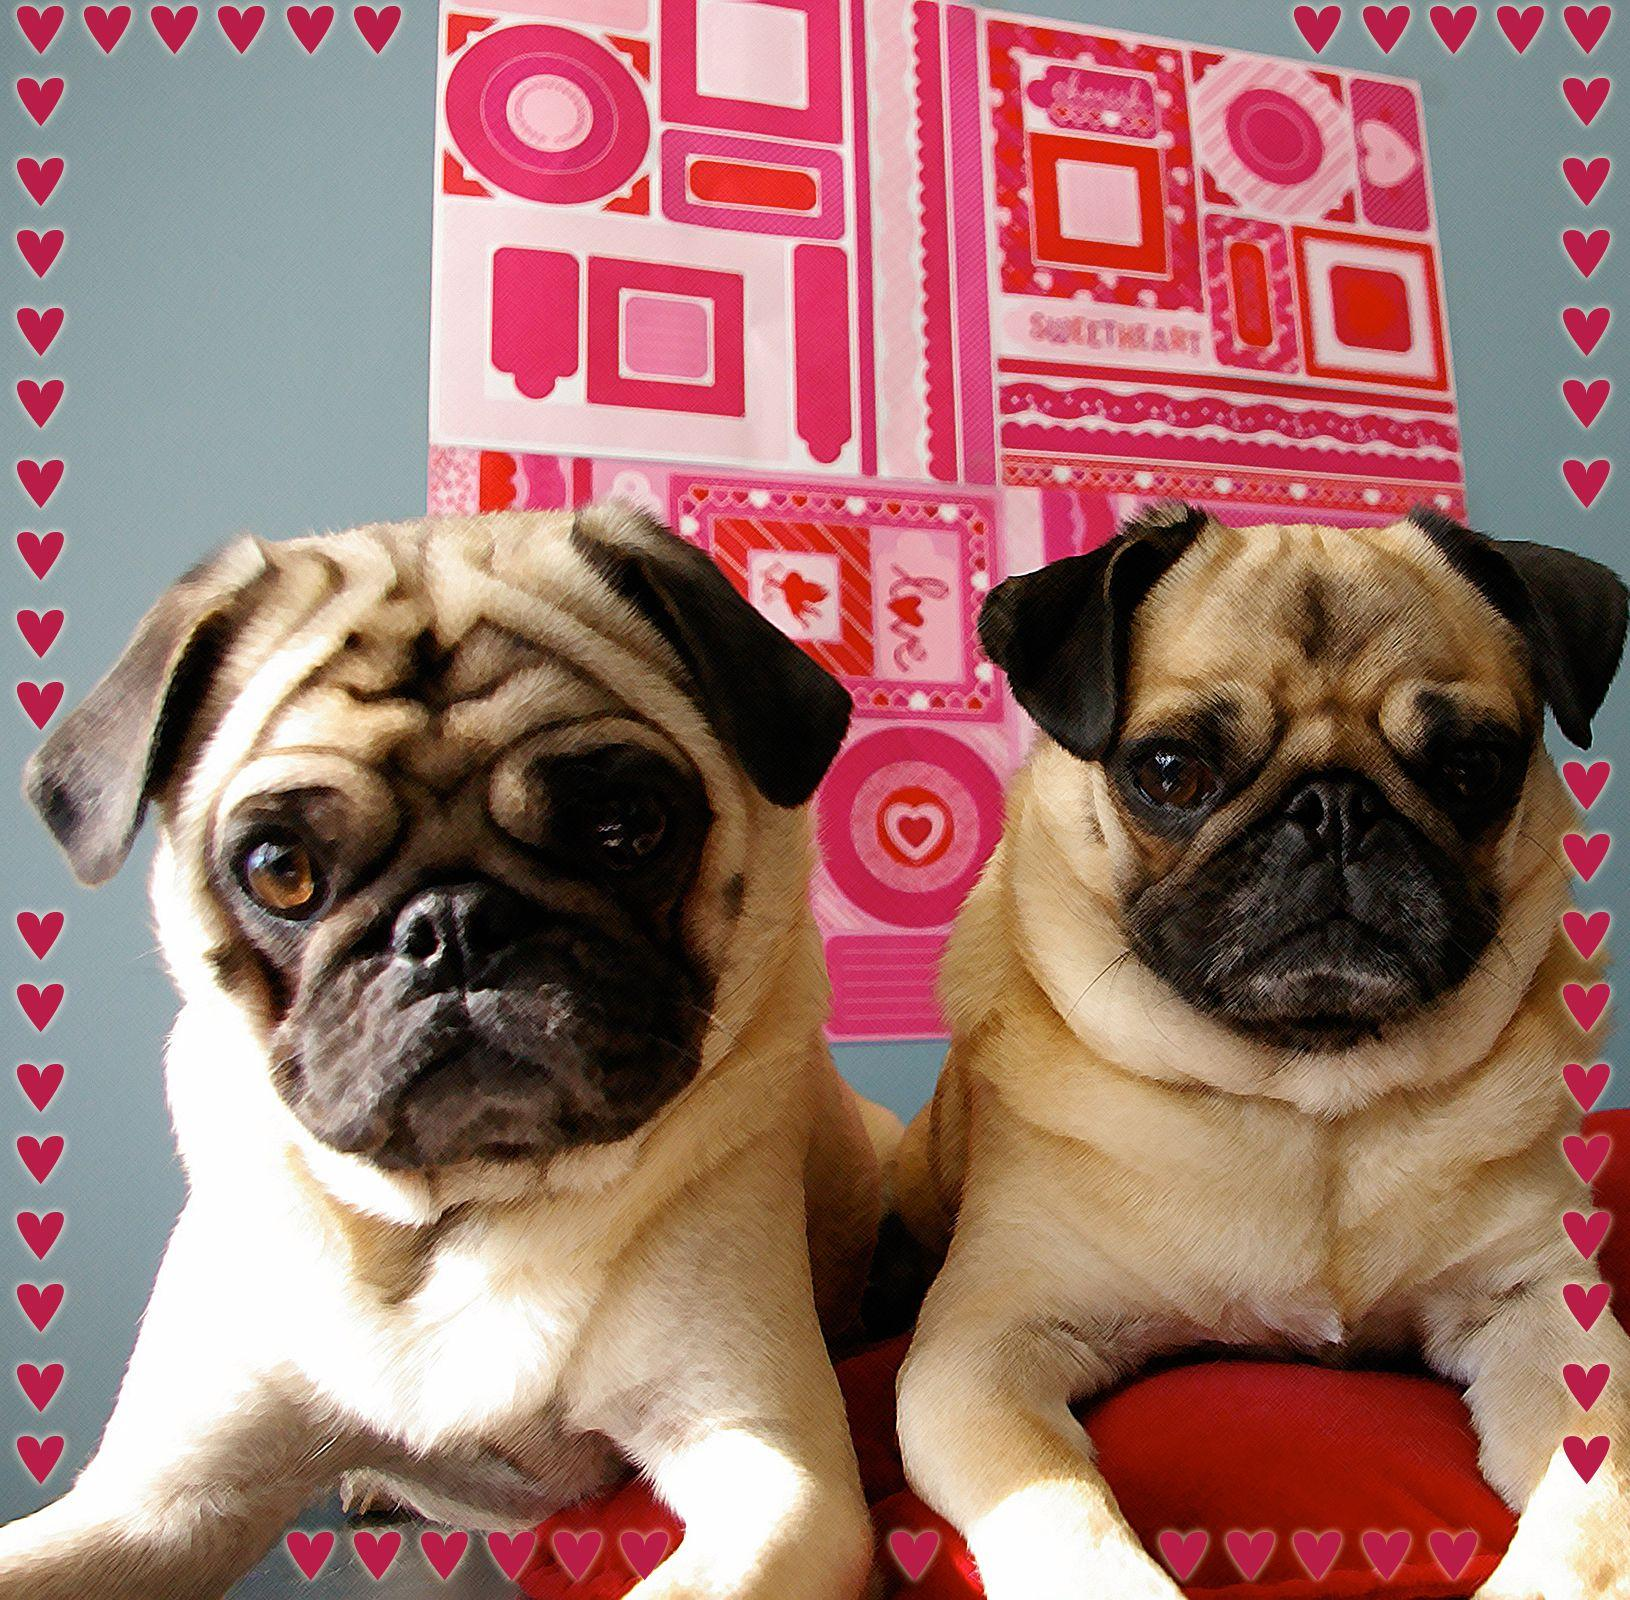 Two Cute Valentine Pug Dogs Photo And Wallpaper Beautiful Puppy ...